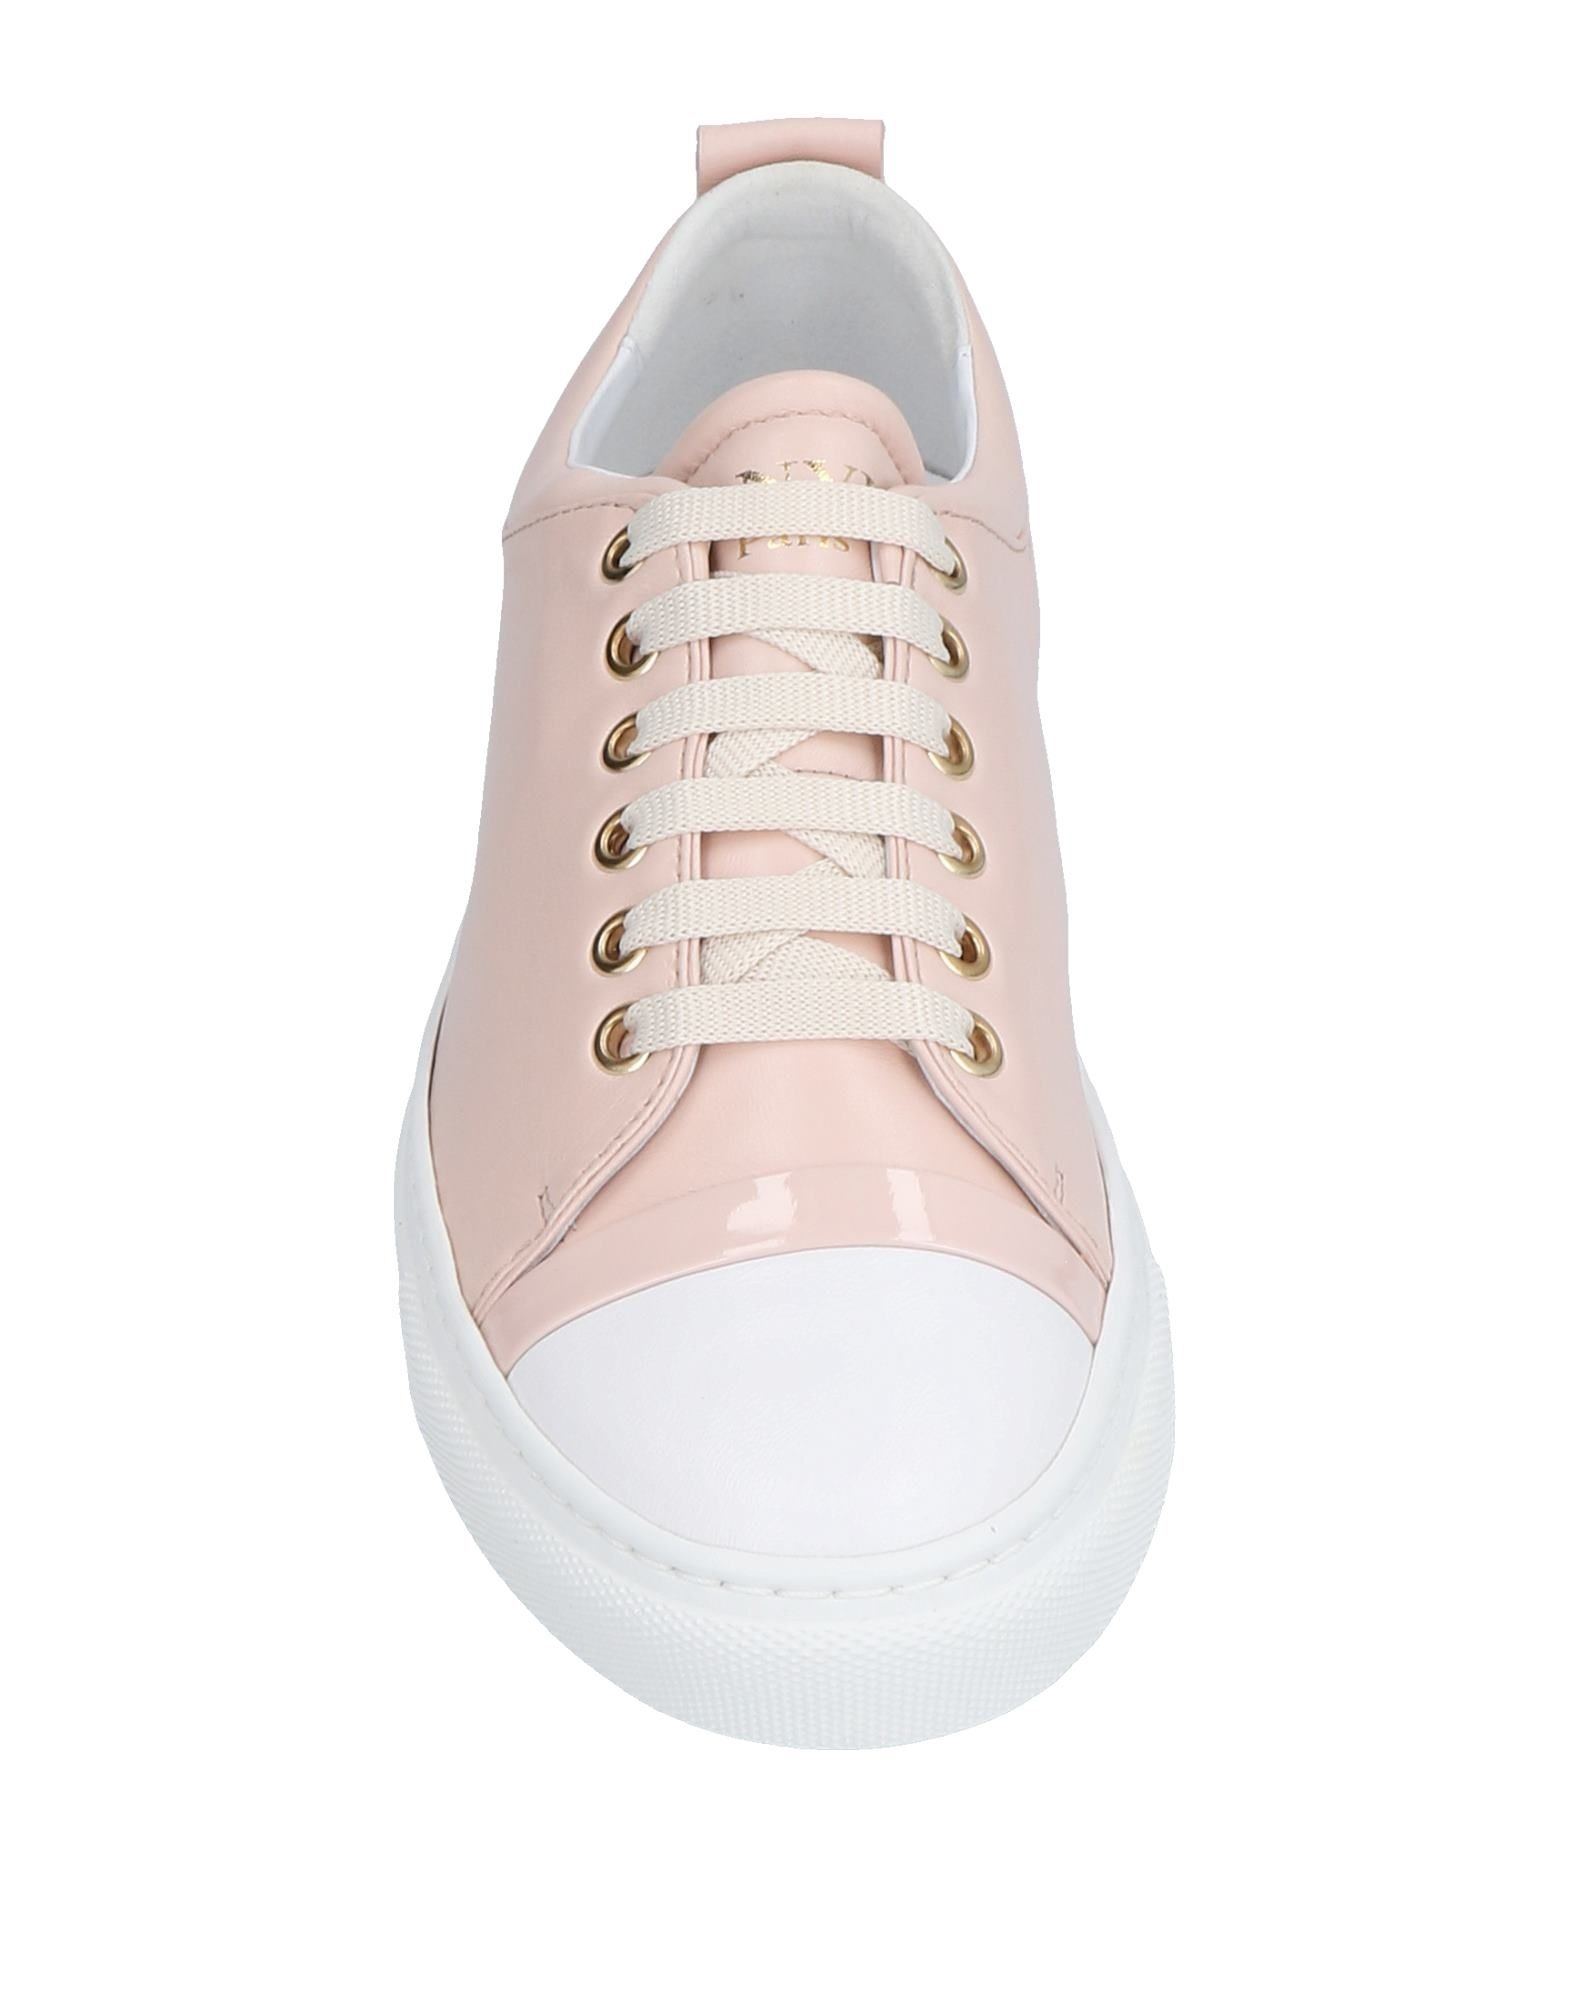 Lanvin Sneakers - Women Lanvin Sneakers Sneakers Sneakers online on  Canada - 11492873TP 28ce3d